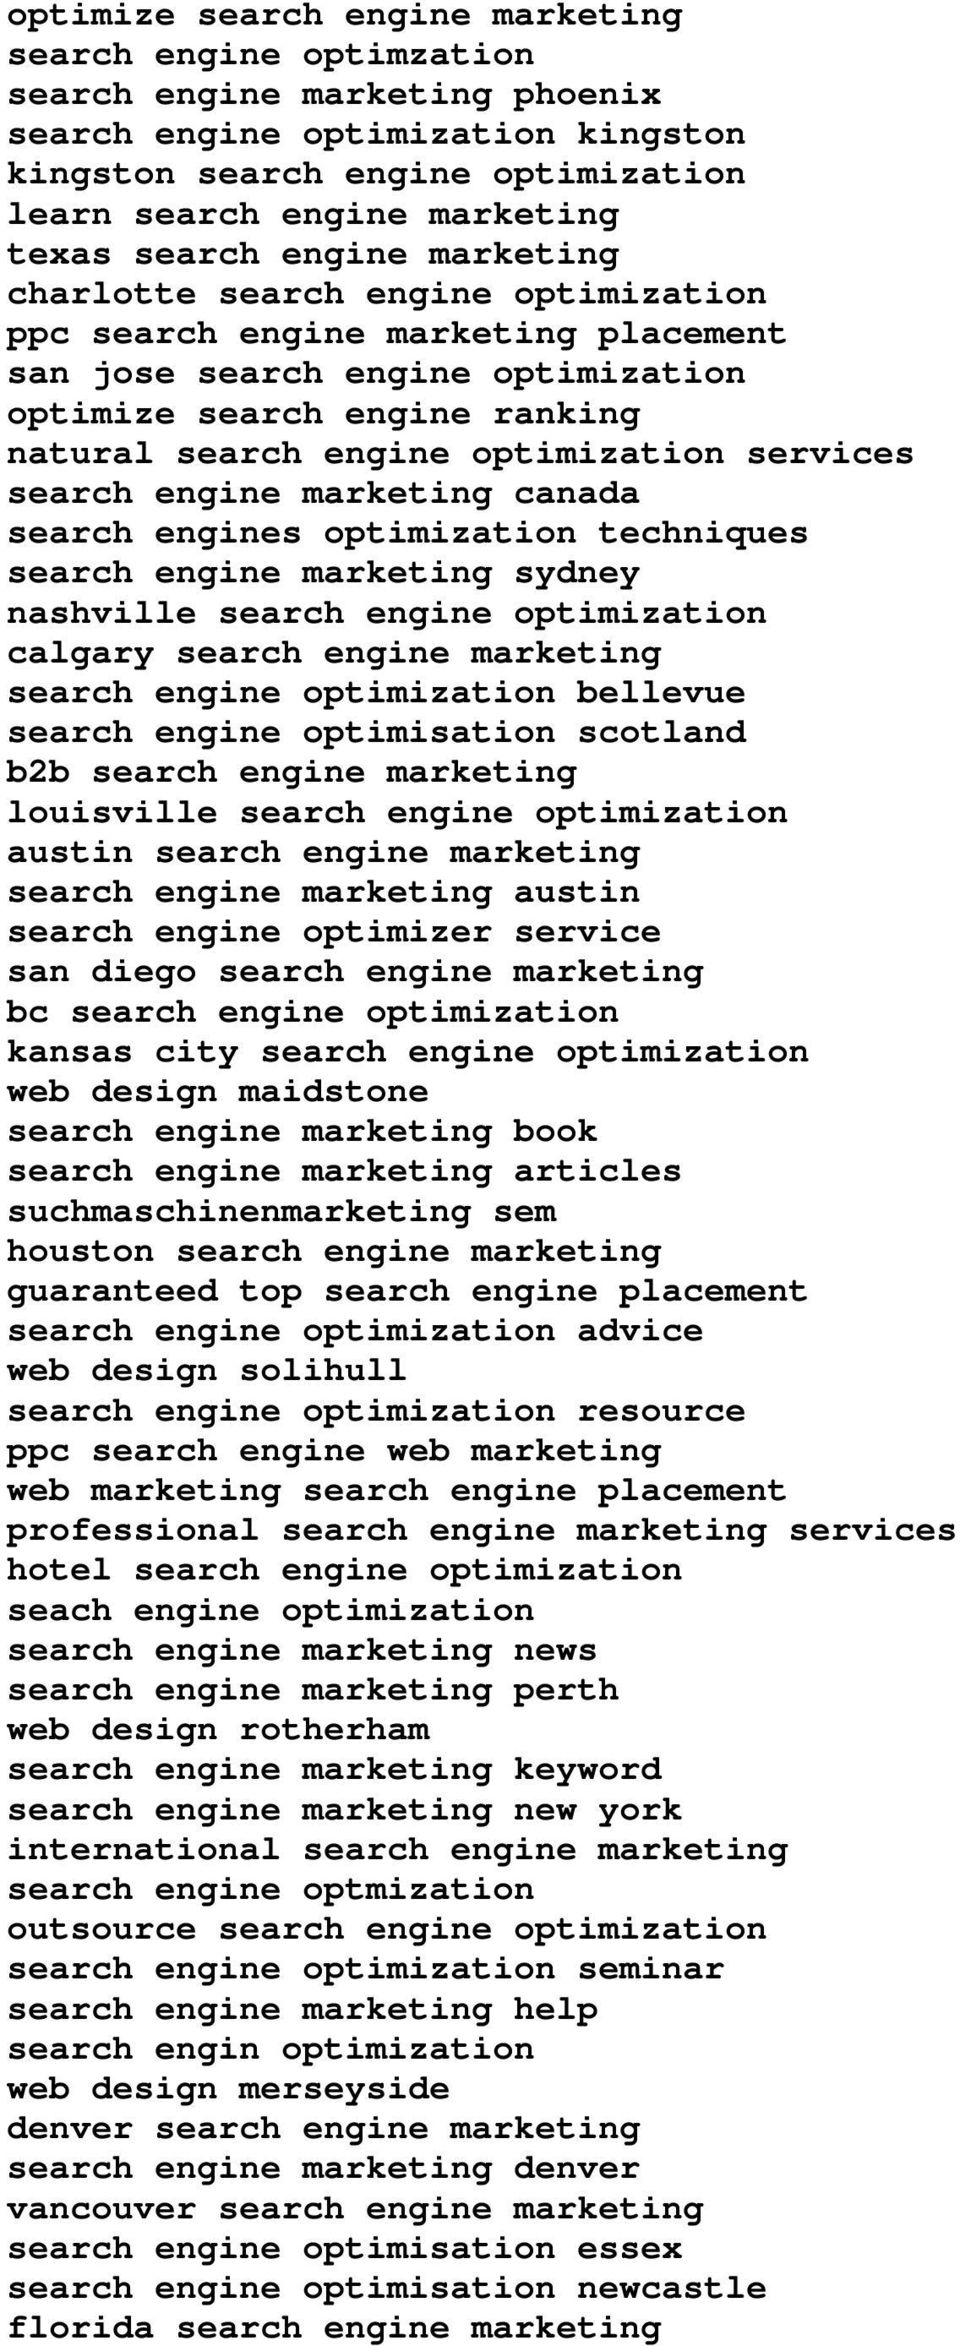 optimization services search engine marketing canada search engines optimization techniques search engine marketing sydney nashville search engine optimization calgary search engine marketing search